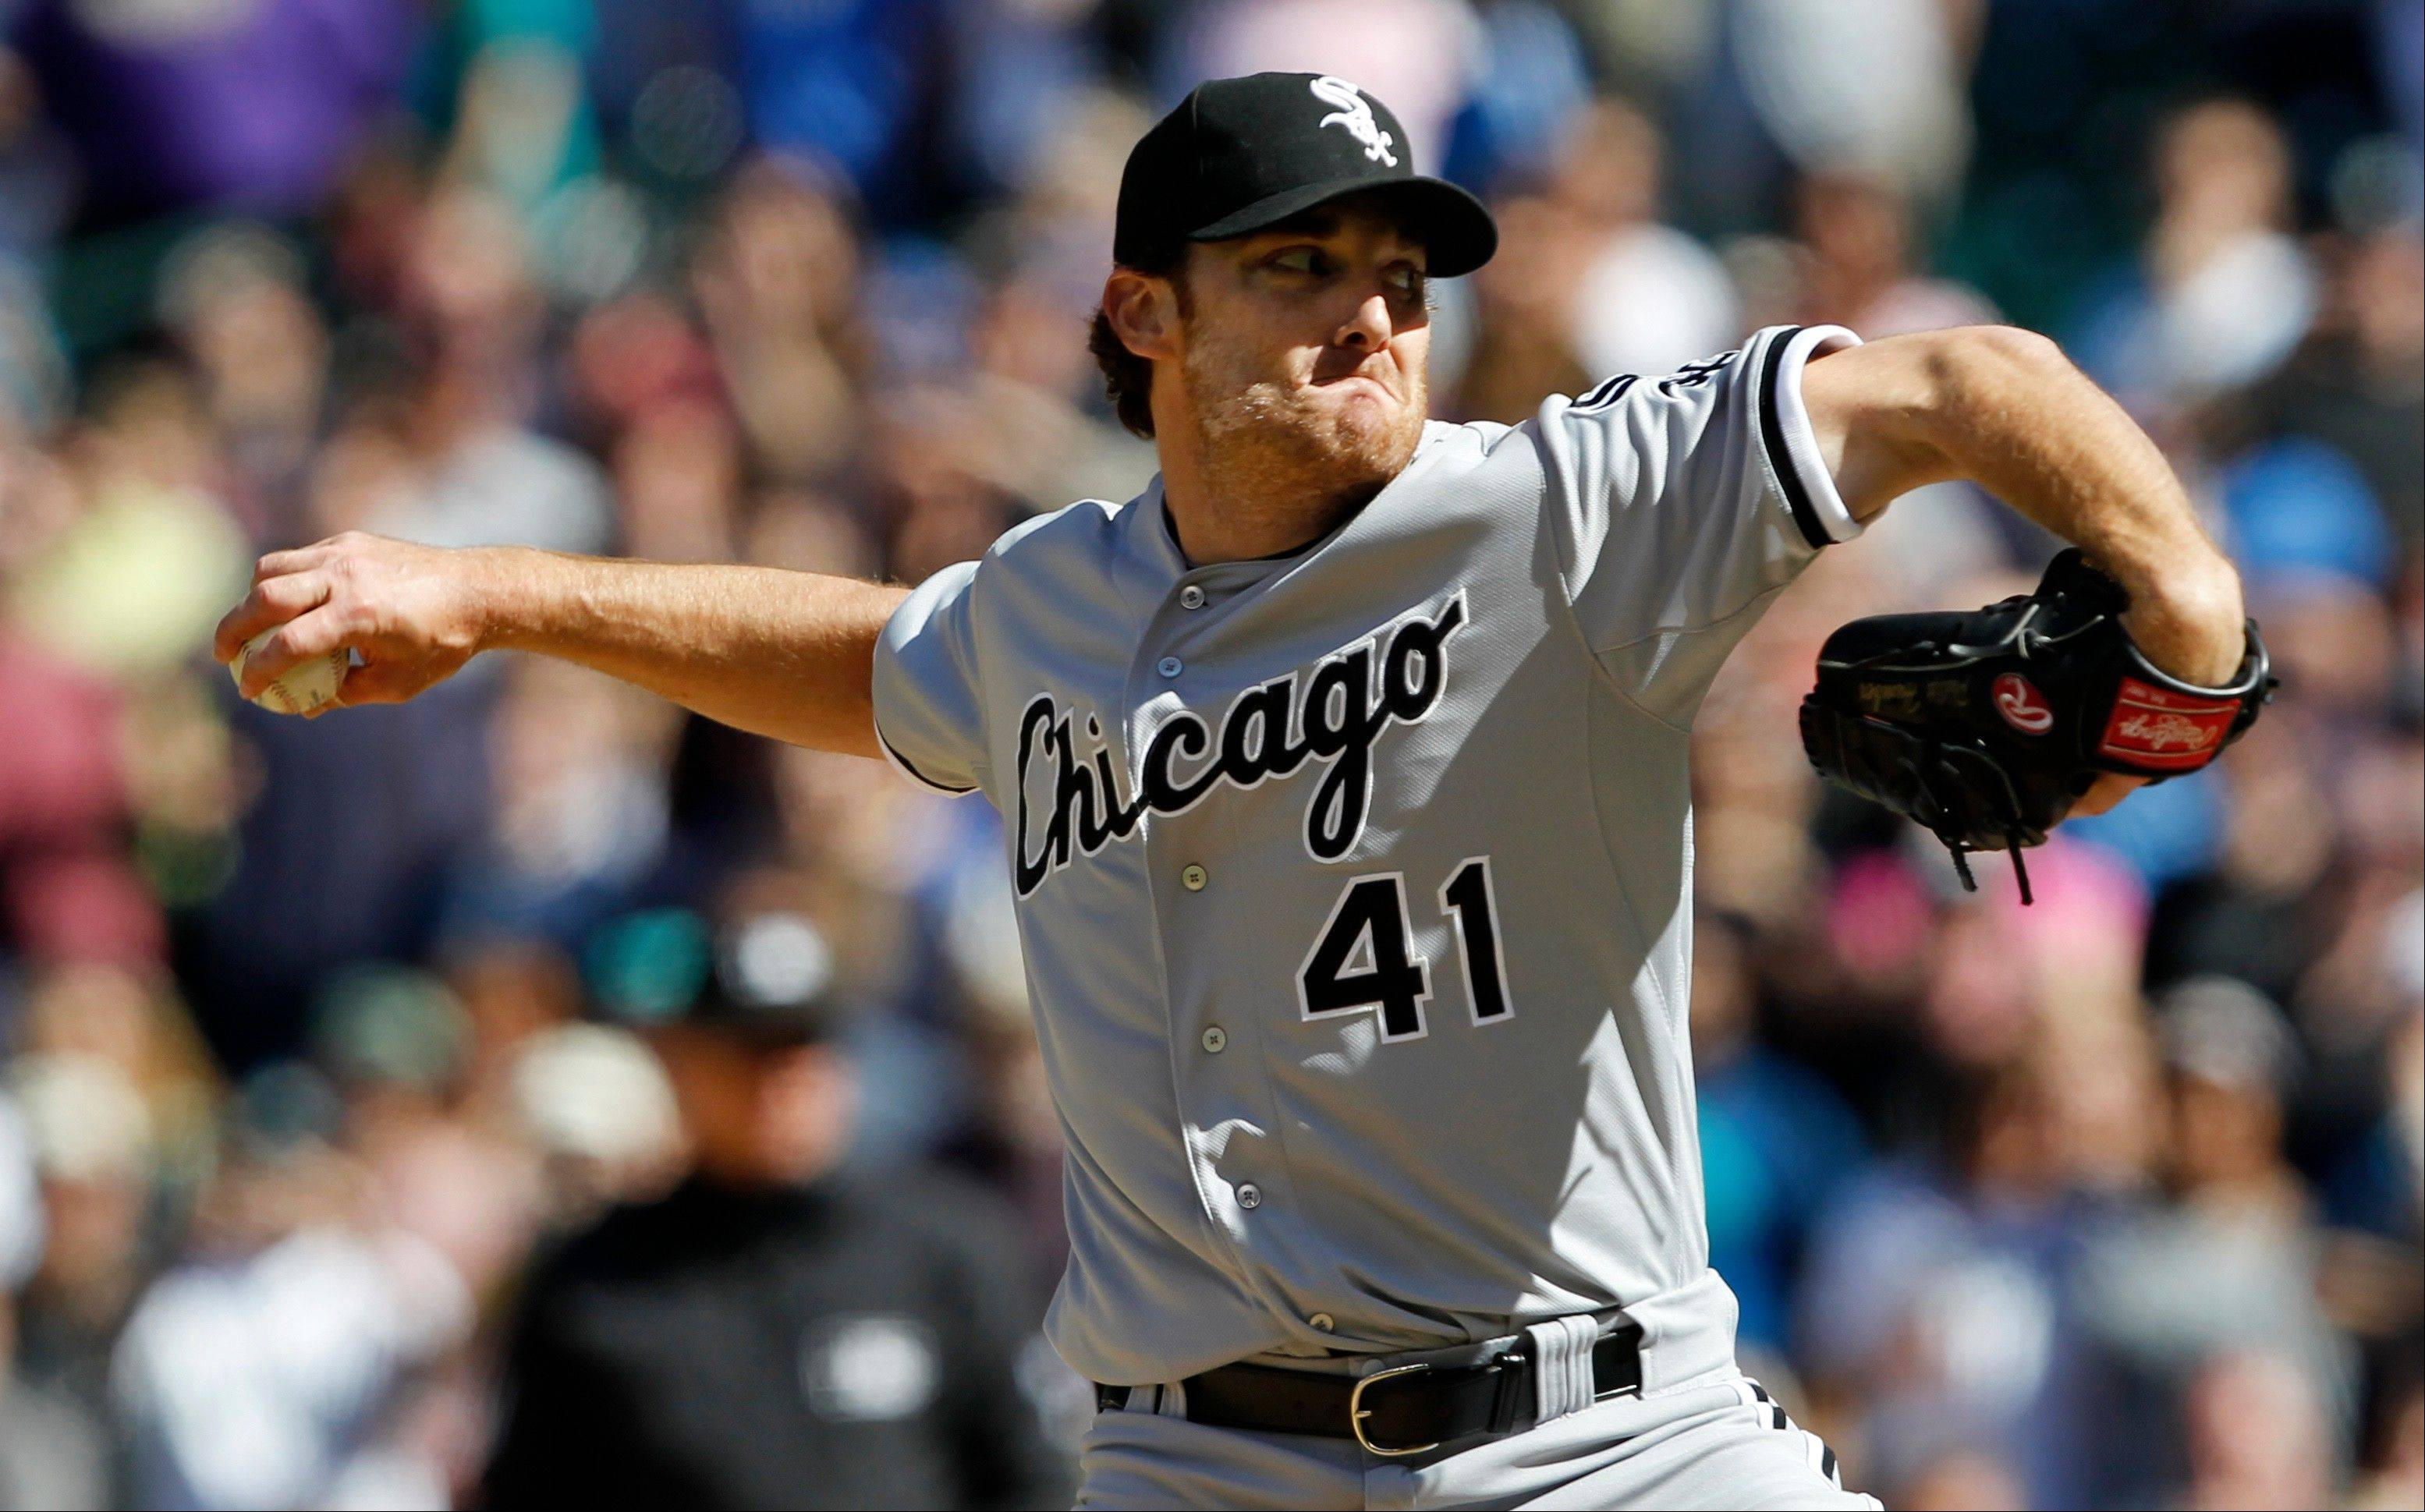 White Sox starting pitcher Phil Humber throws to the final batter Saturday.